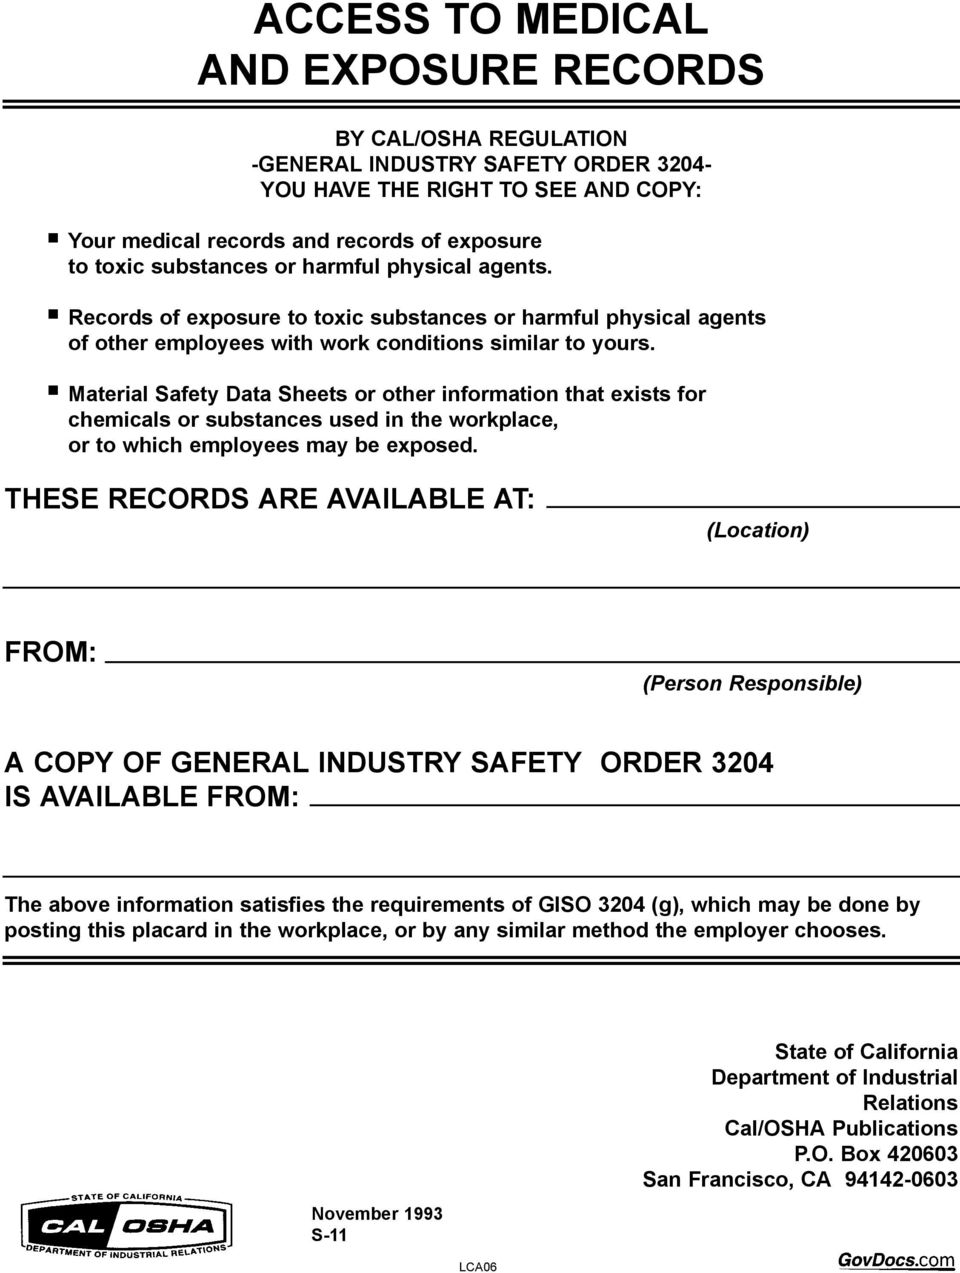 Material Safety Data Sheets or other information that exists for chemicals or substances used in the workplace, or to which employees may be exposed.